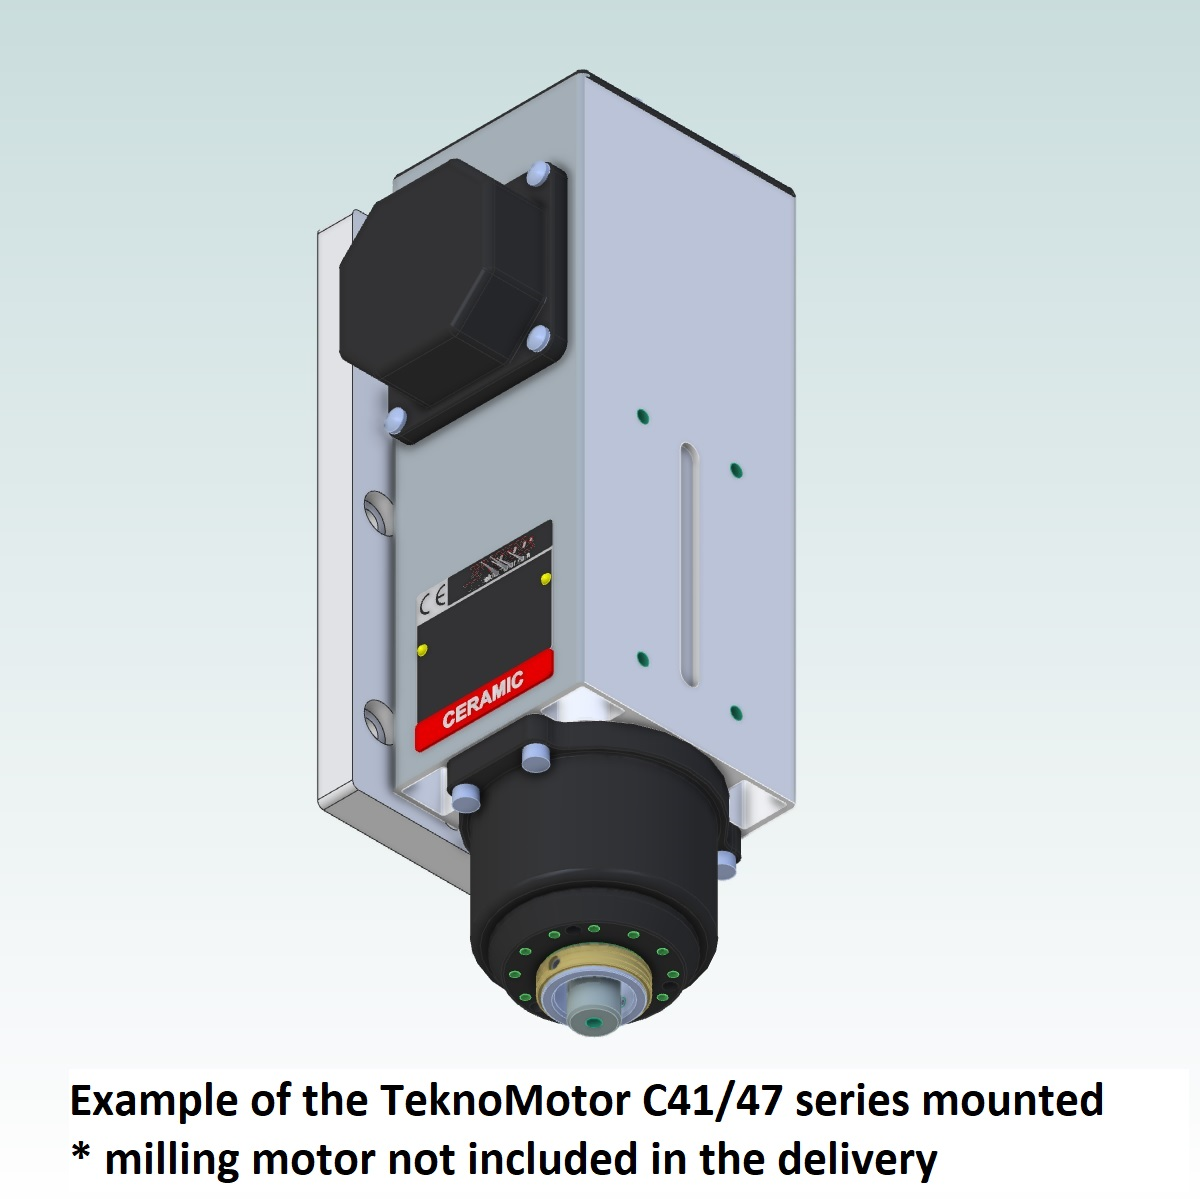 42713 teknomotor mountingplate icp4030 example with qtc mounted